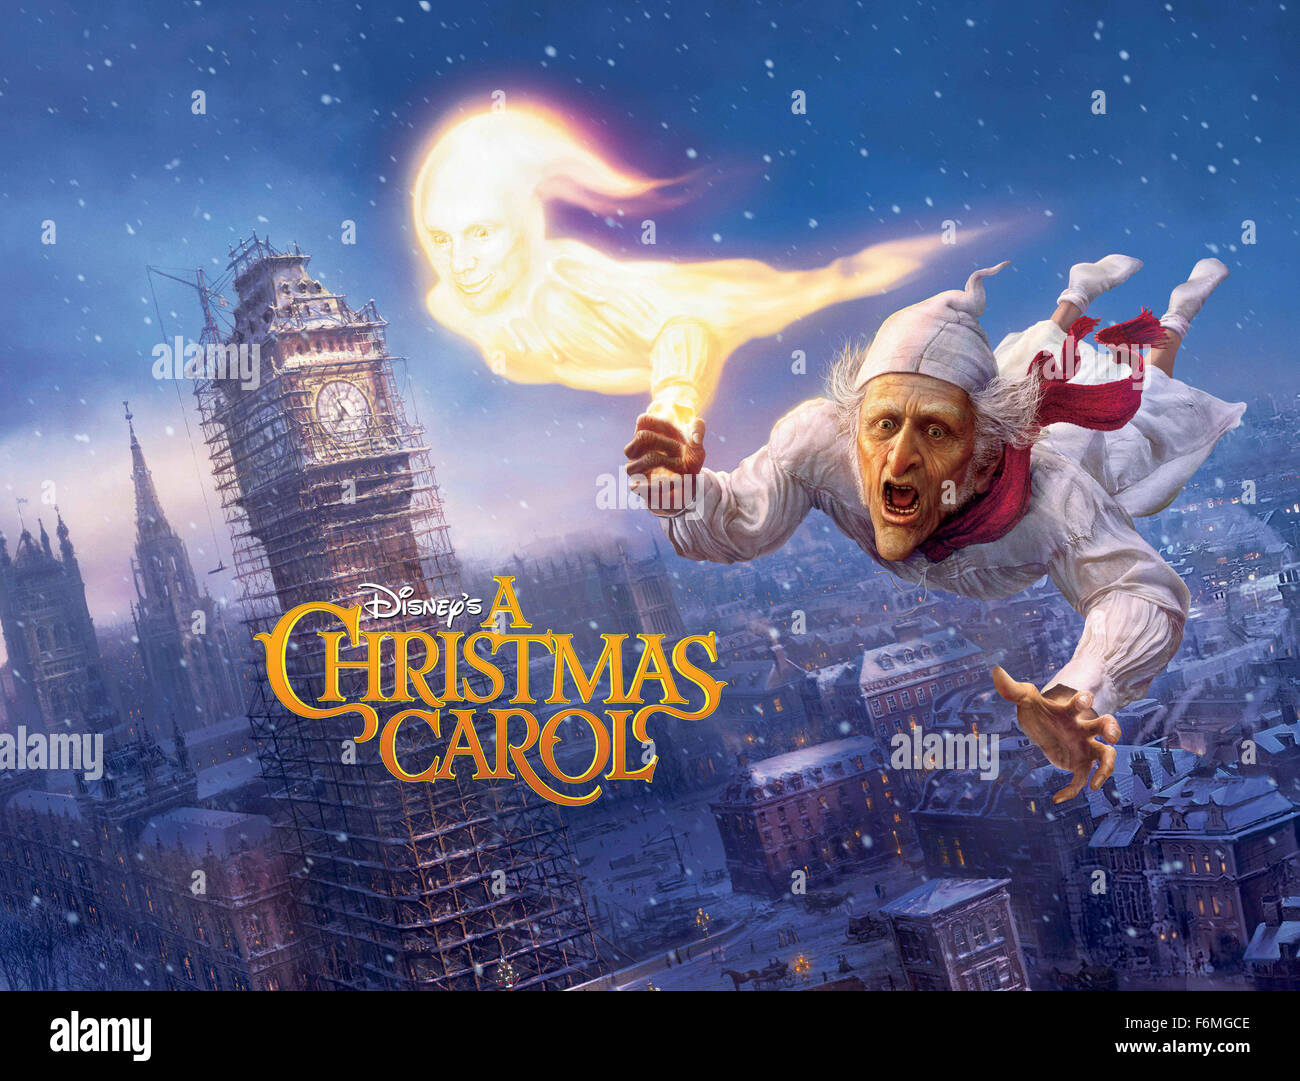 RELEASE DATE: November 6, 2009. MOVIE TITLE: A Christmas Carol Stock Photo, Royalty Free Image ...